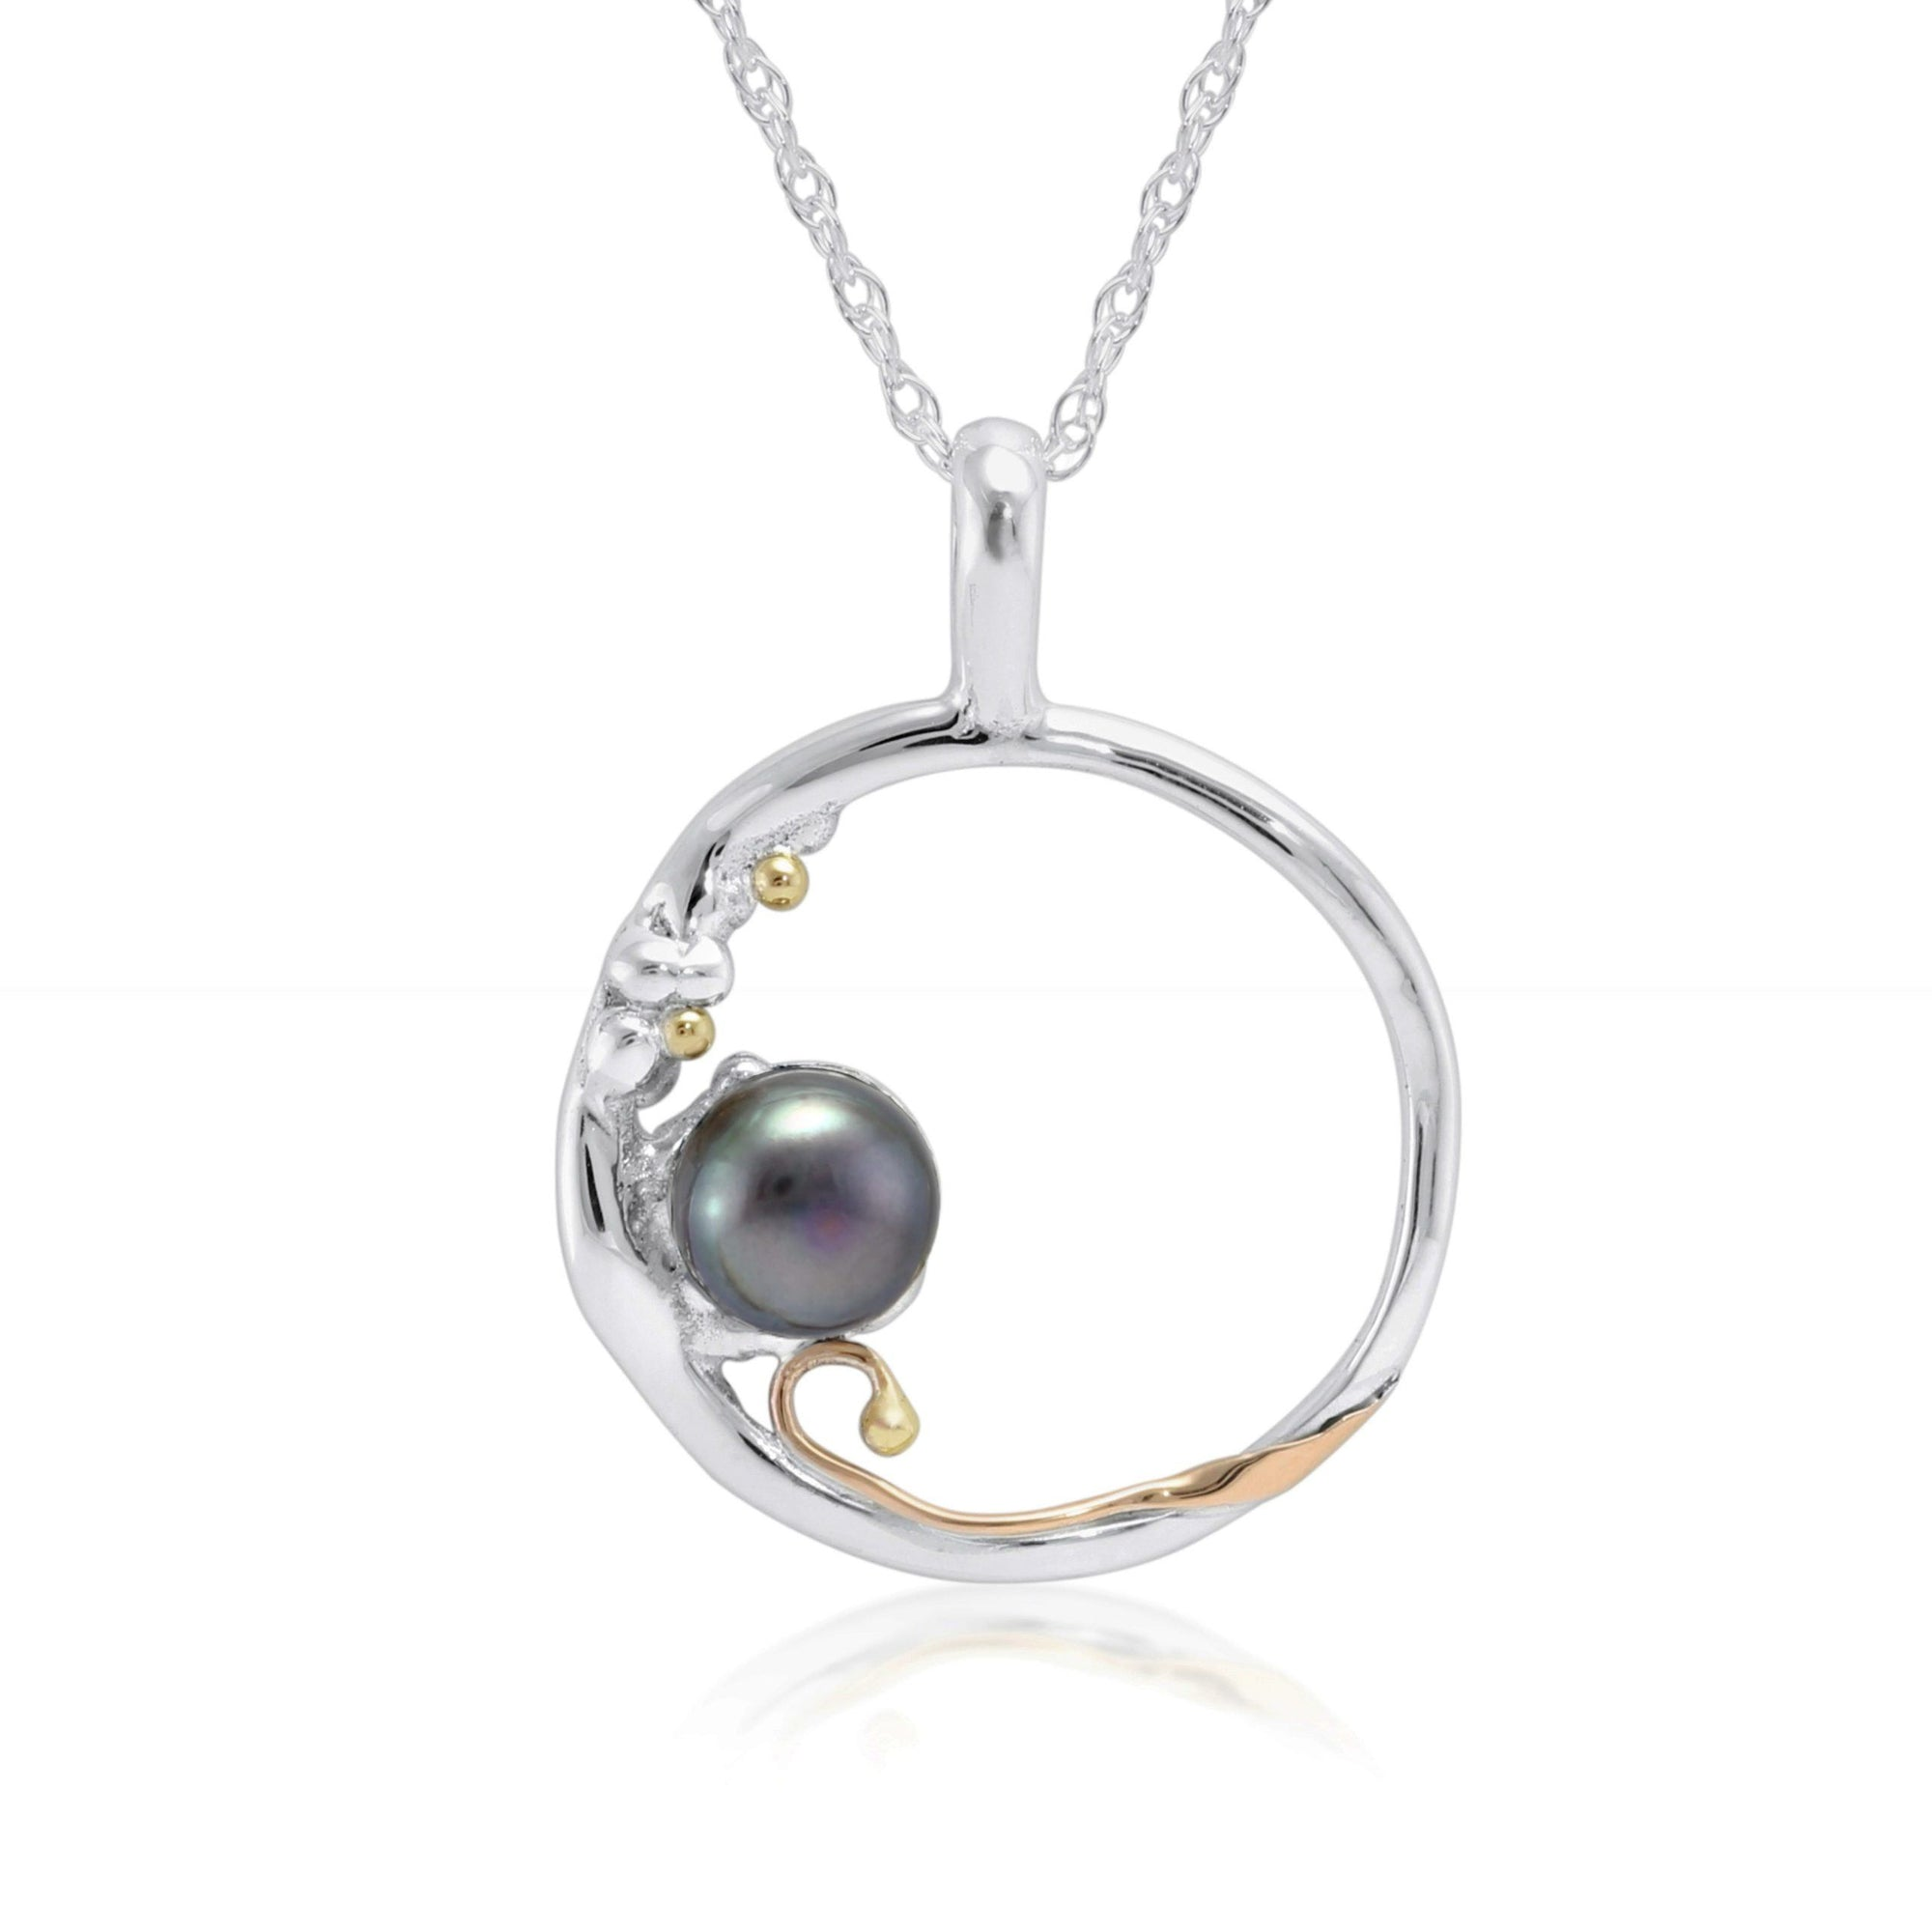 Silver Open Circle Pendant with Black Freshwater Pearl Jewellery Banyan